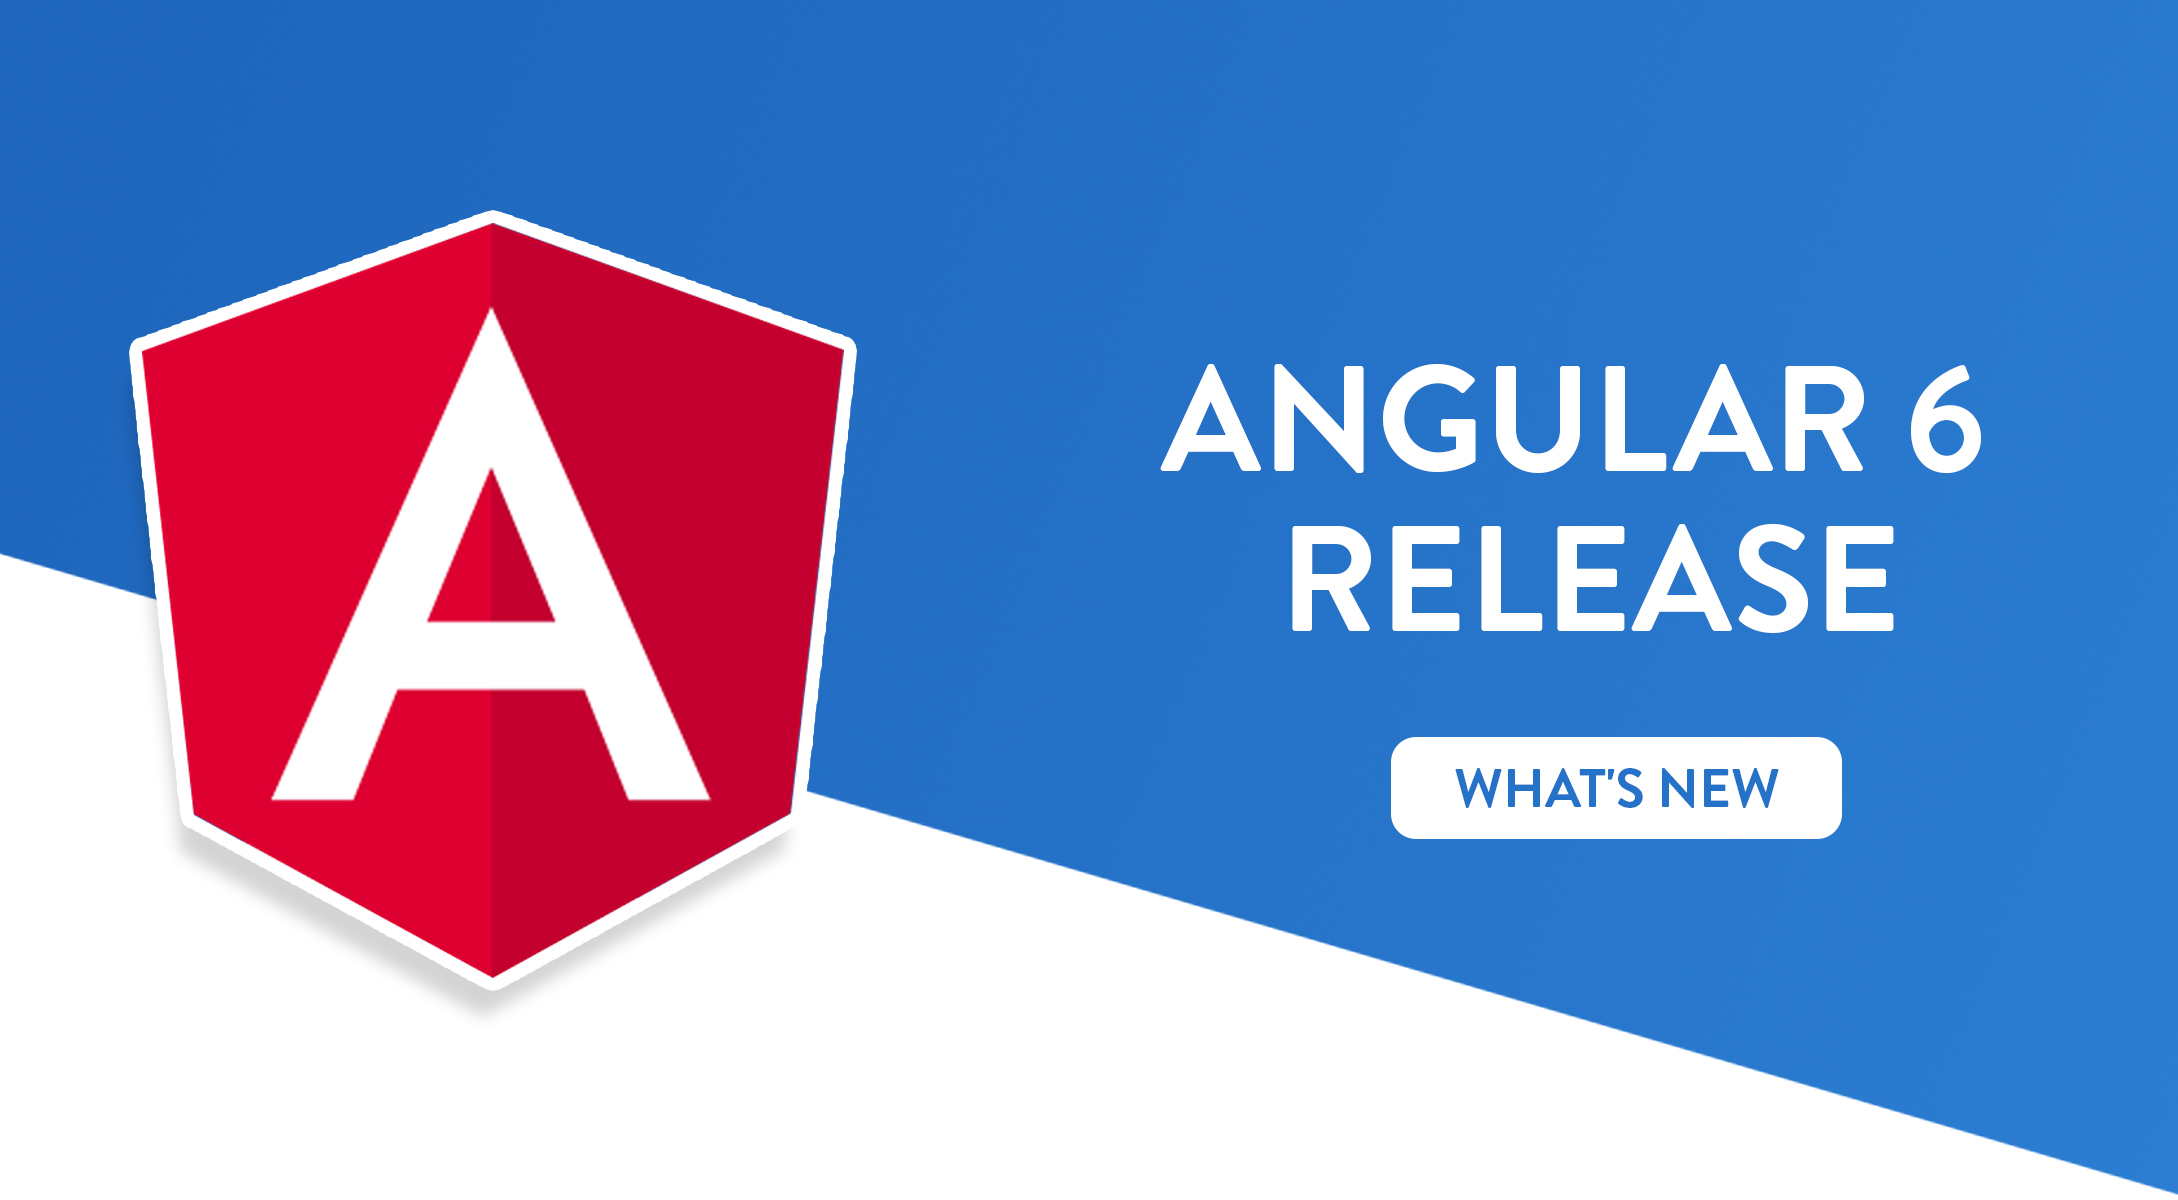 The release of Angular 6